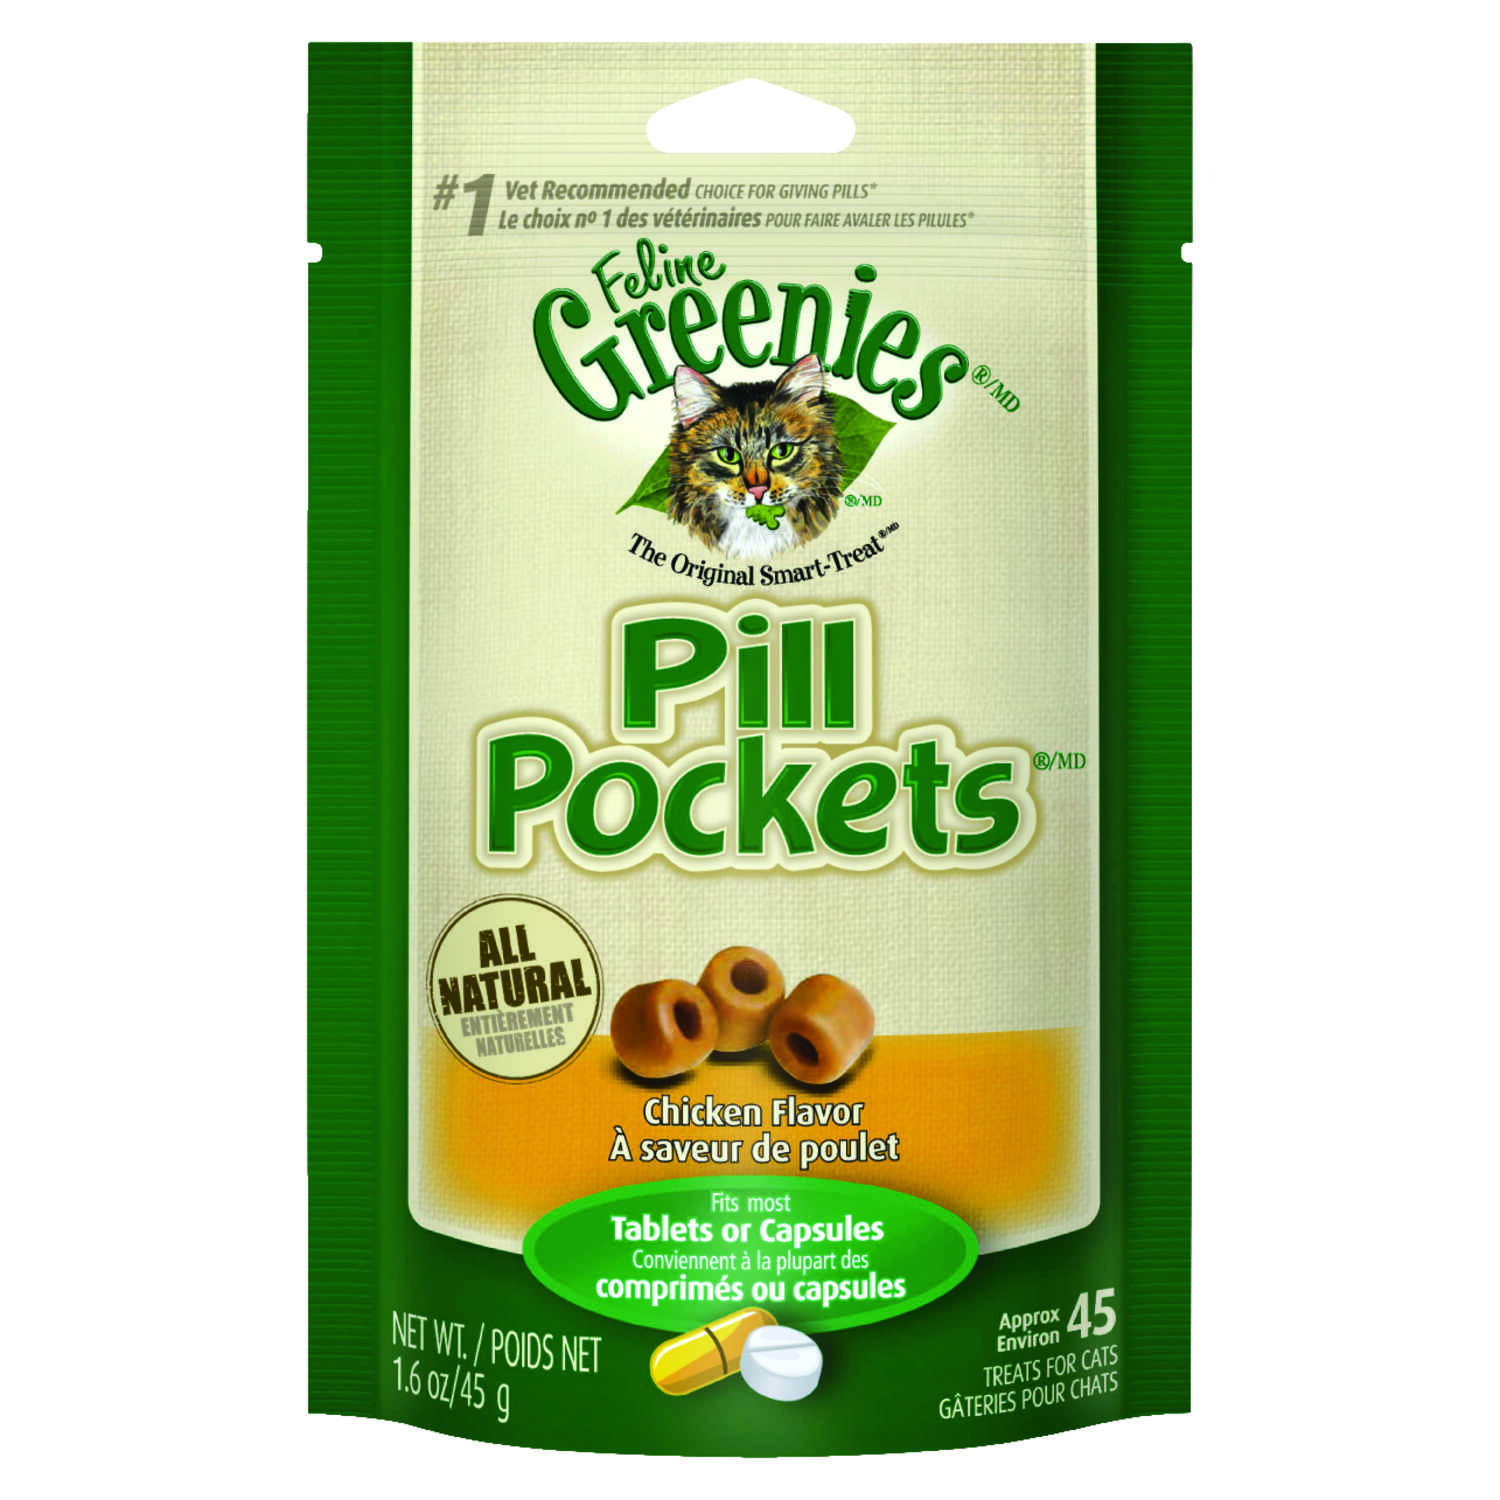 Greenies  Pill Pockets  1.6 oz. Chicken  Cat  Cat Food